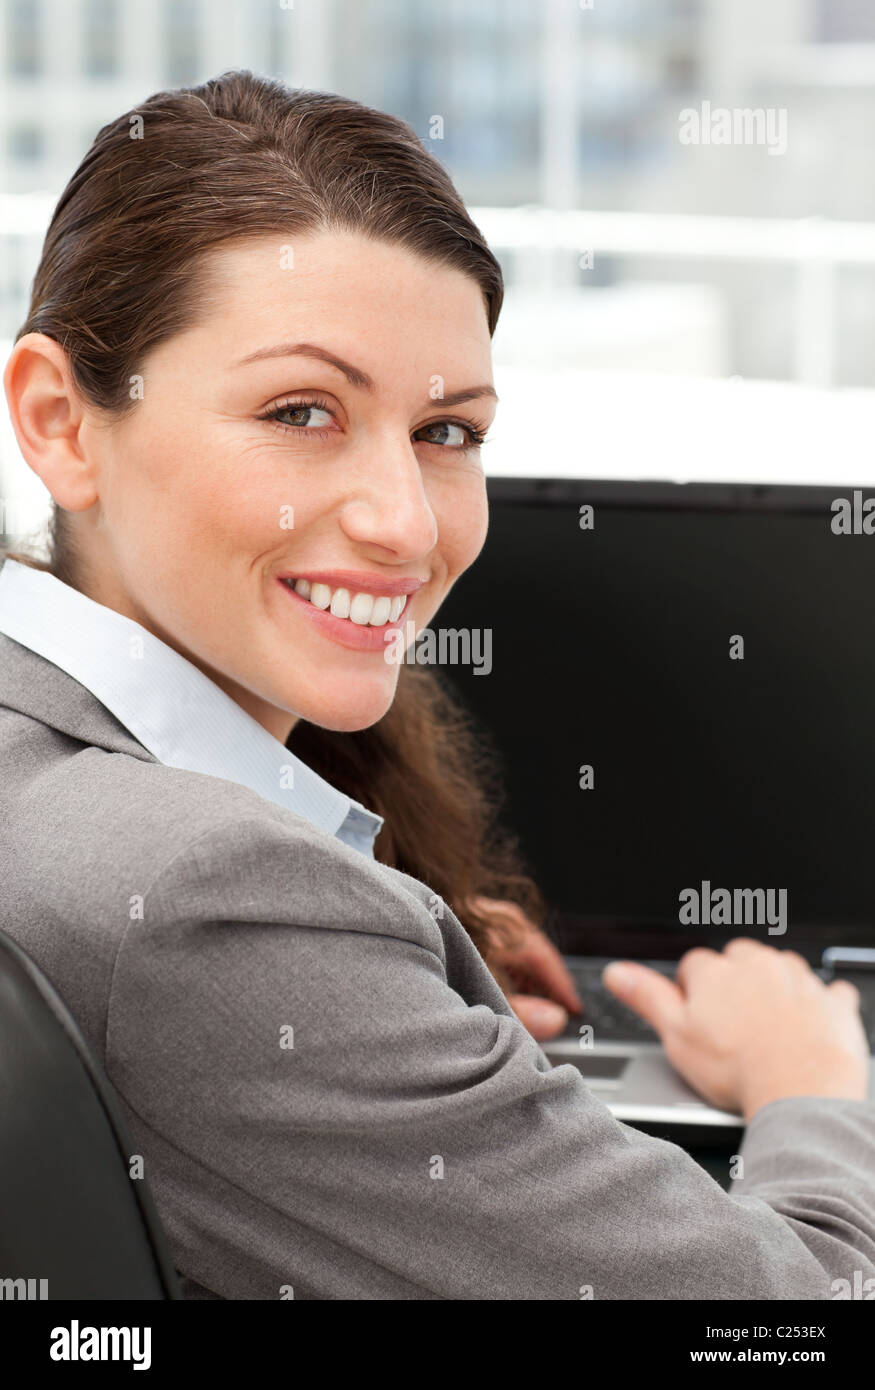 Rear view of a happy businesswoman working on her laptop - Stock Image